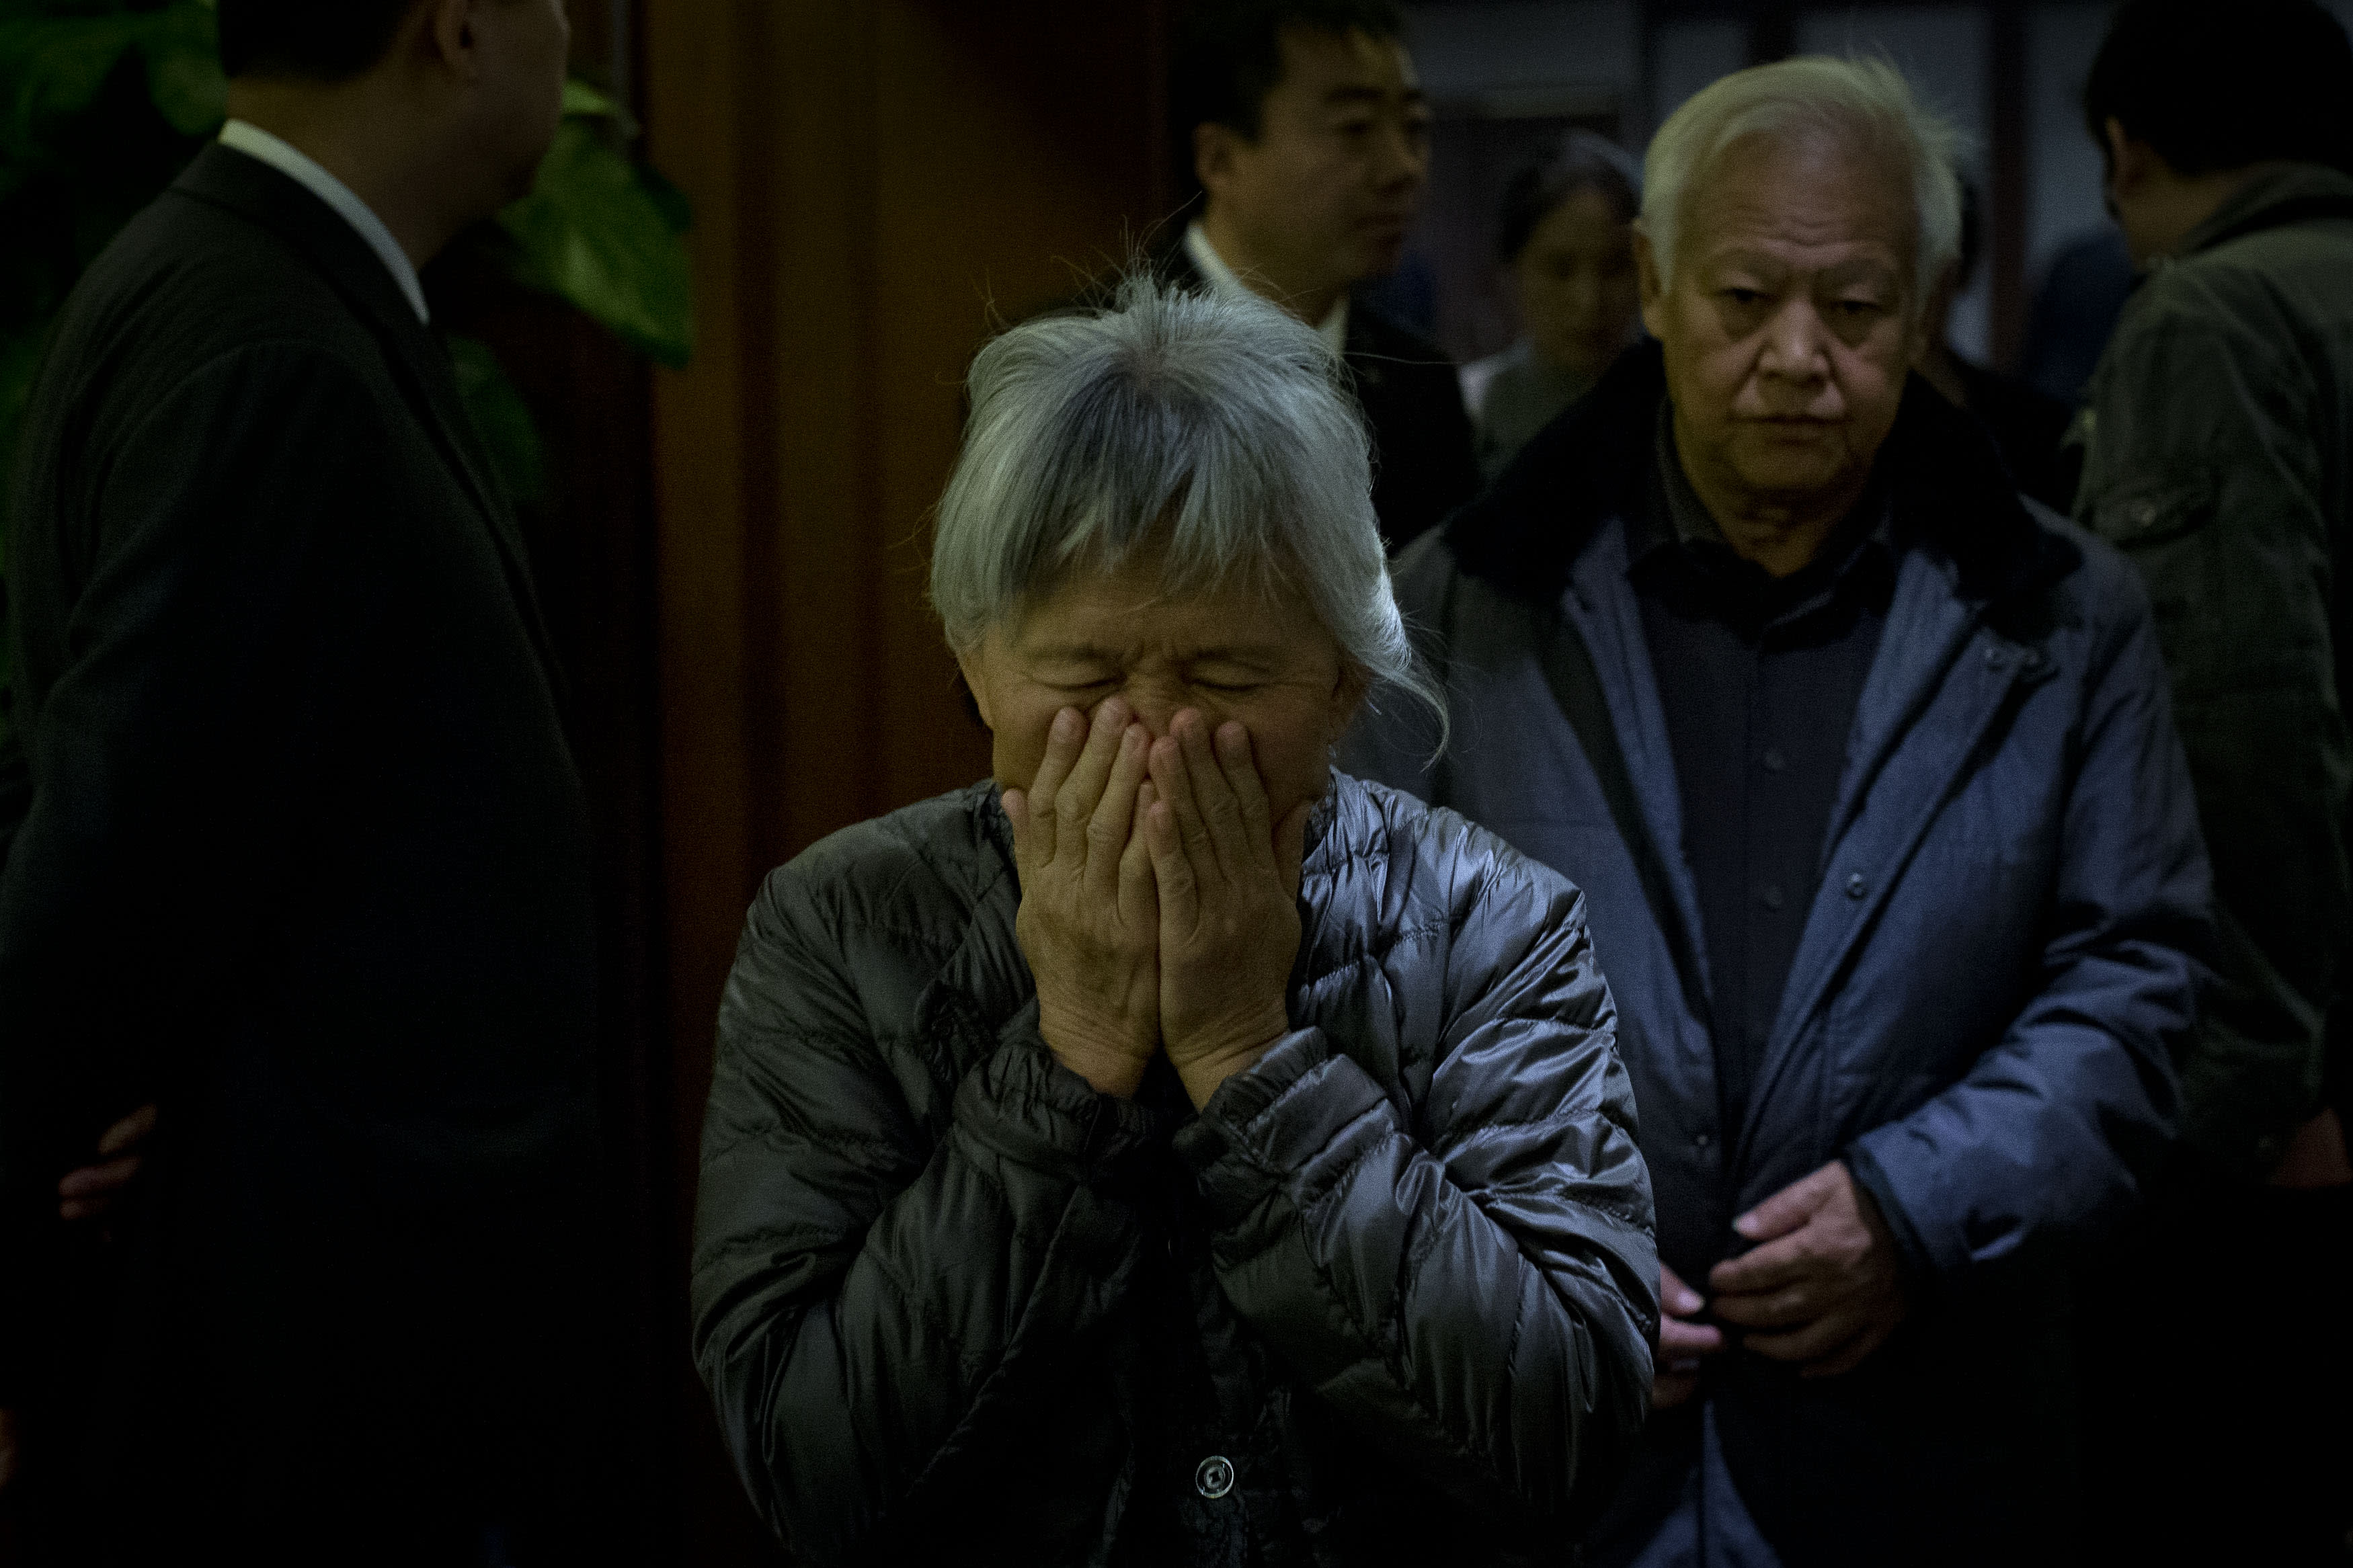 An elderly woman, one of the relatives of Chinese passengers aboard missing Malaysia Airlines Flight MH370, covers her face out of frustration as she leaves a hotel ballroom after a daily briefing meeting with managers of Malaysia Airlines in Beijing, China, Wednesday, March 19, 2014. Search crews from 26 countries are looking for Malaysia Airlines Flight 370, which vanished early March 8 with 239 people aboard en route from Kuala Lumpur to Beijing. Frustration is growing among relatives of those on the plane at the lack of progress in the search. (AP Photo/Alexander F. Yuan)